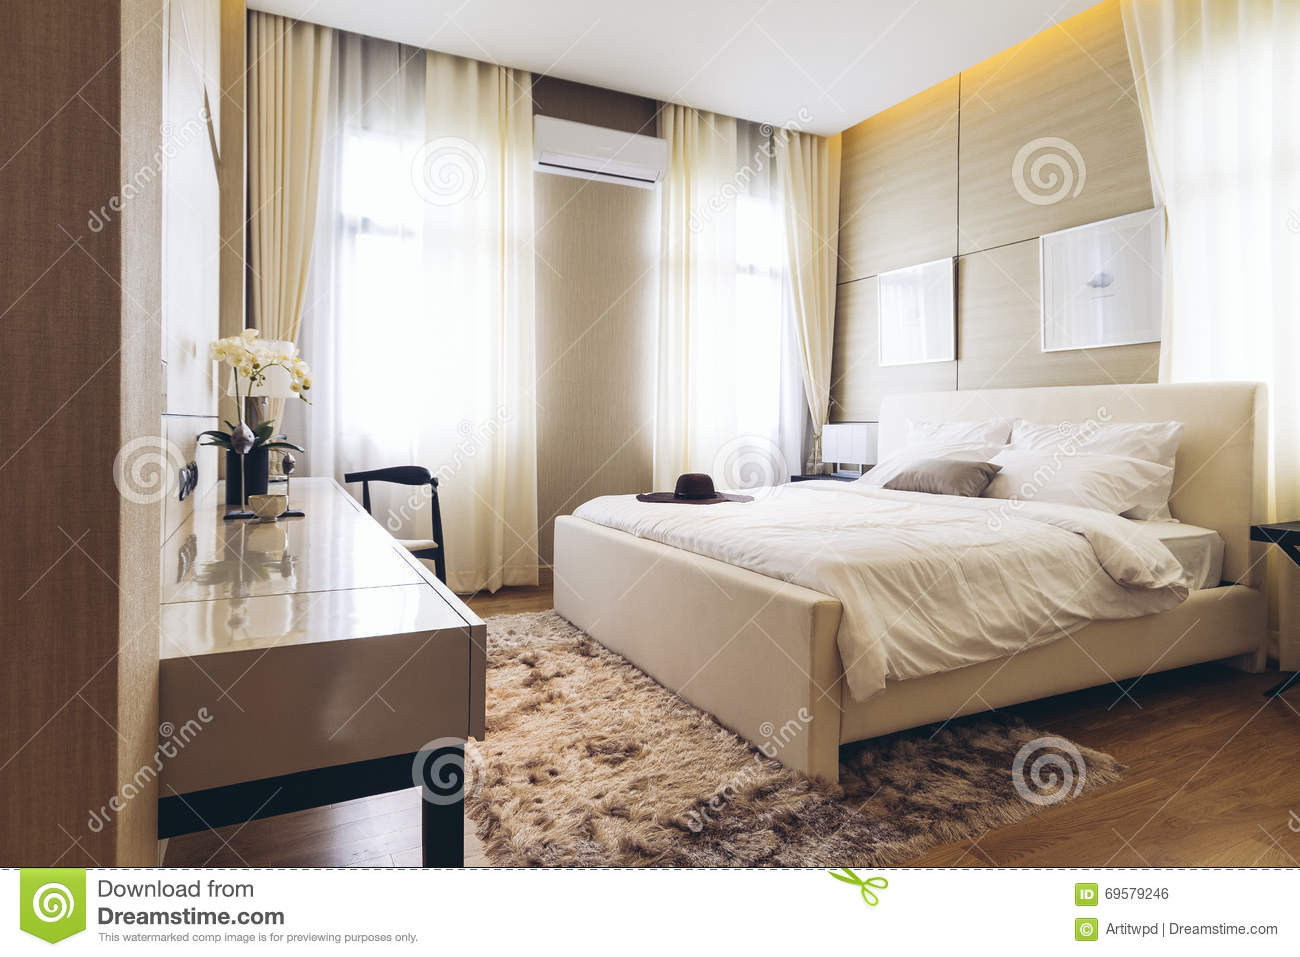 House mod le moderne italien chambre coucher photo for Exemple chambre a coucher